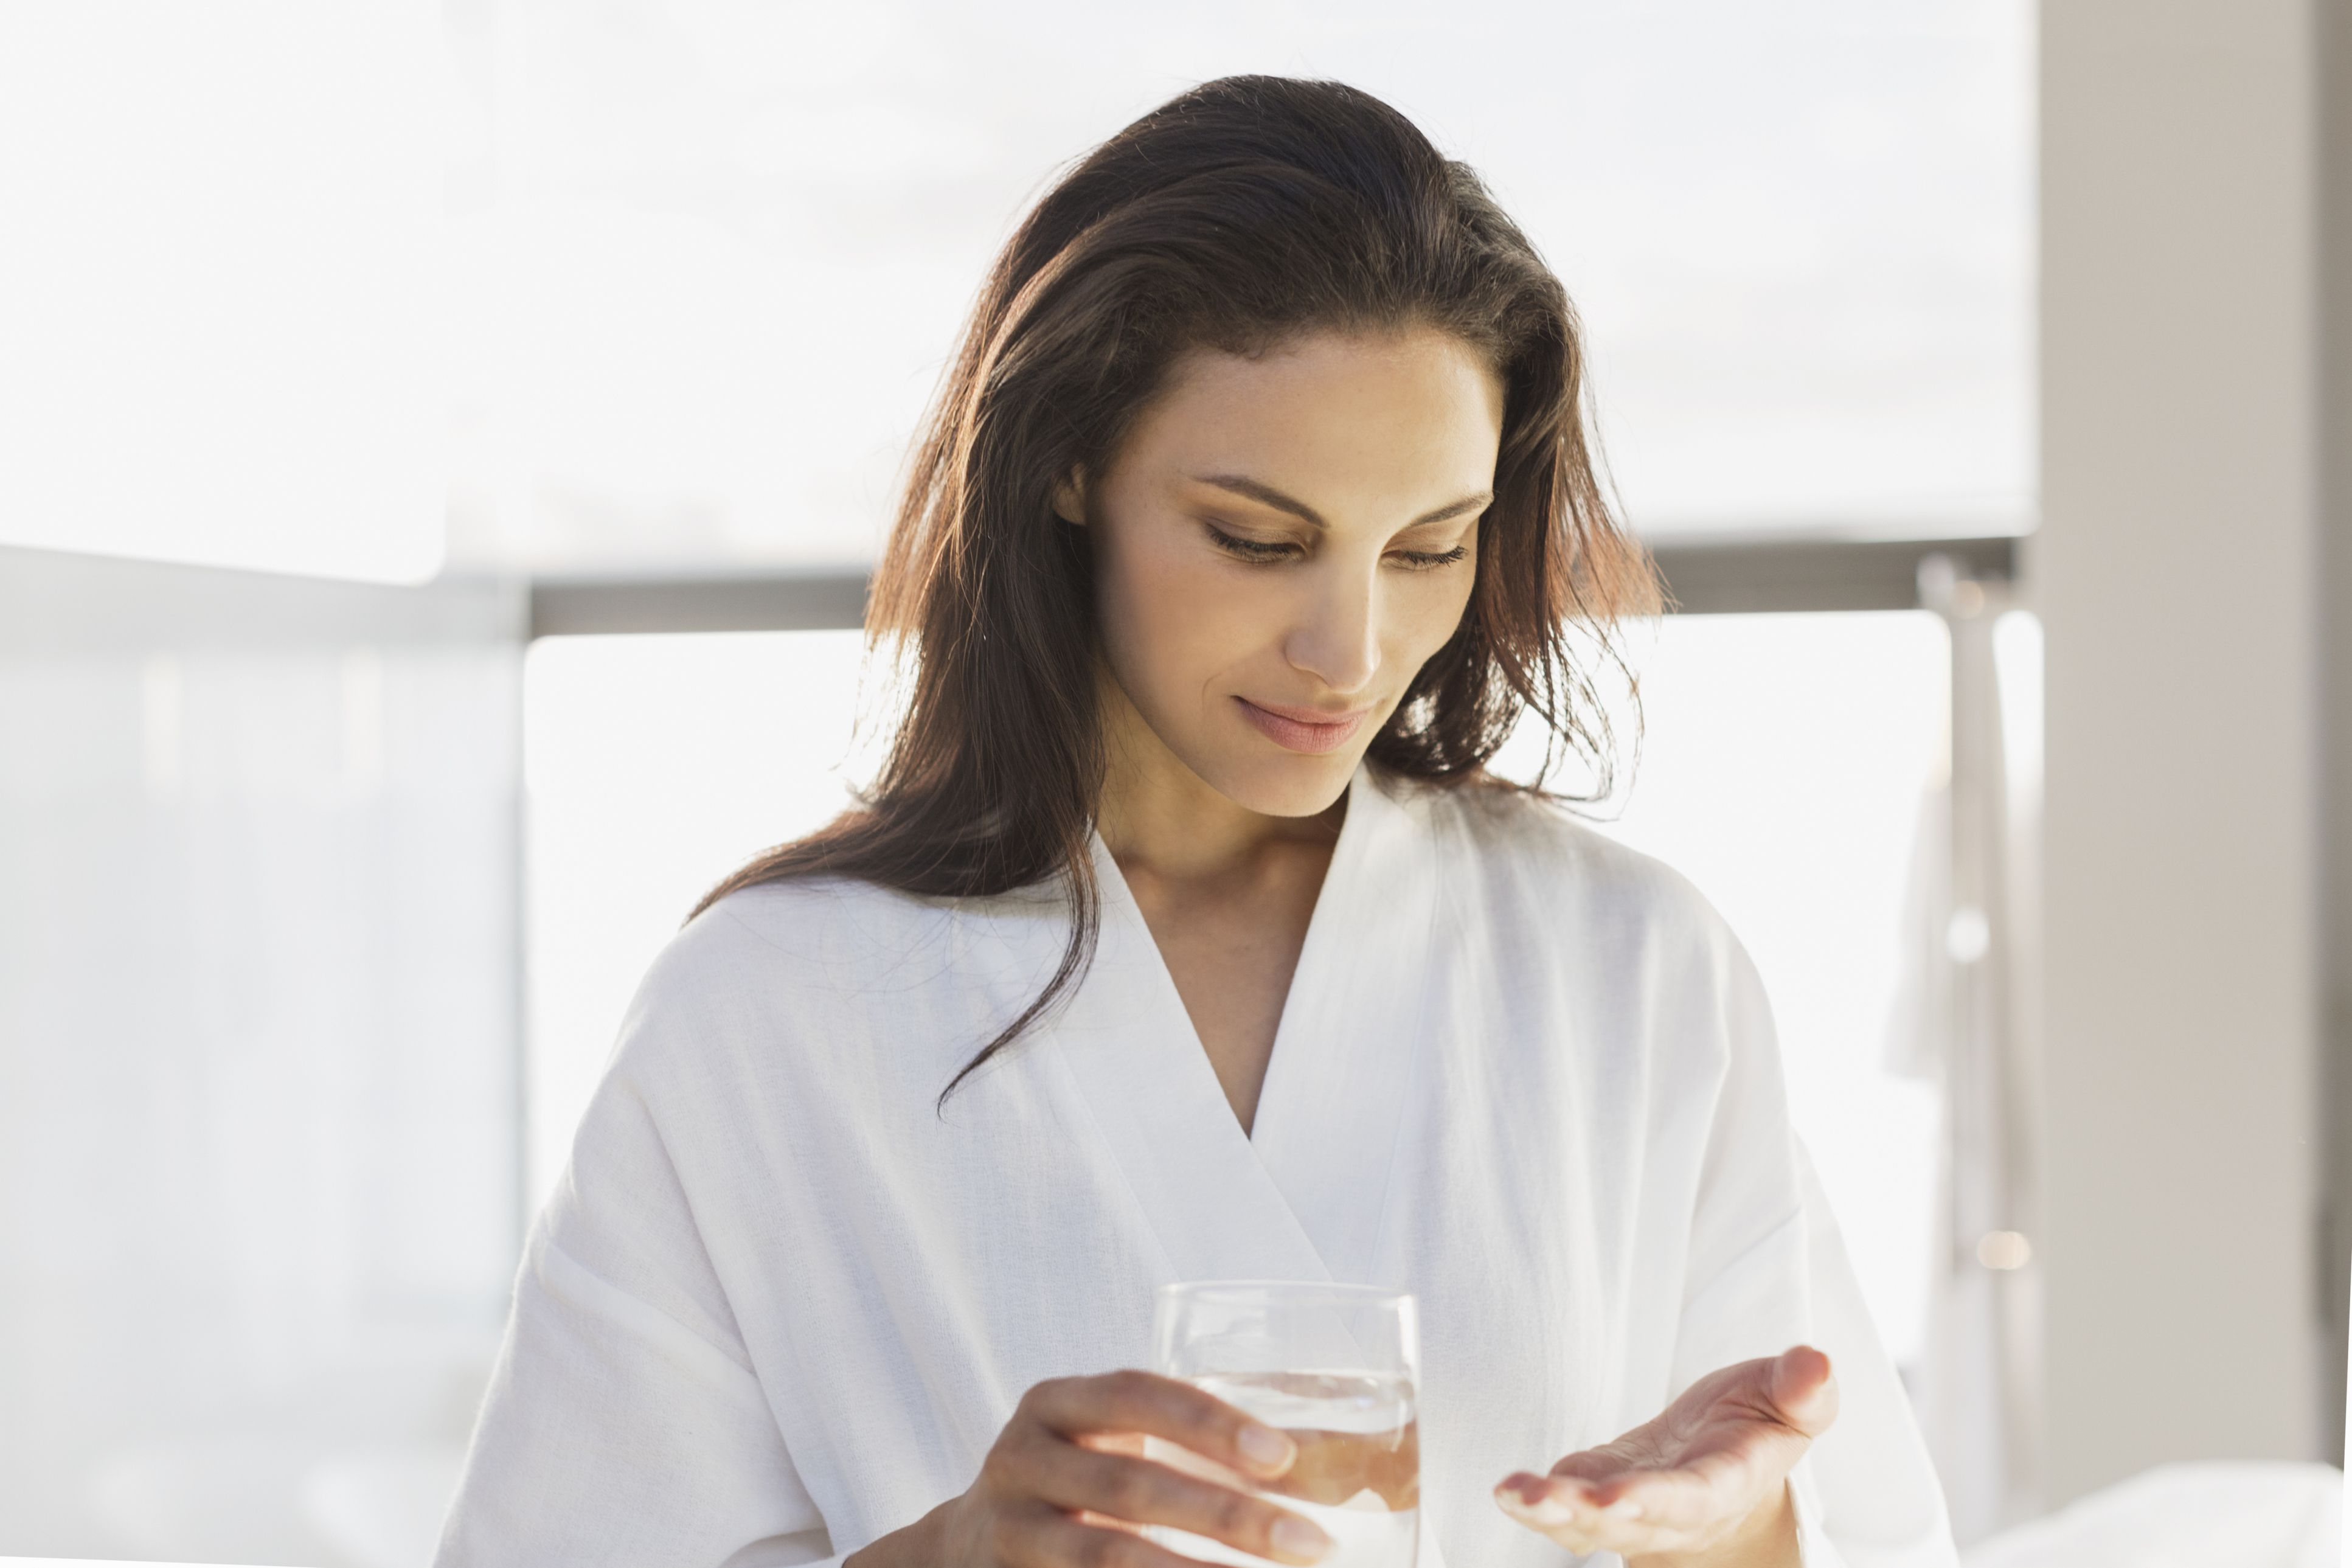 Things To Consider When Buying PMS Supplements